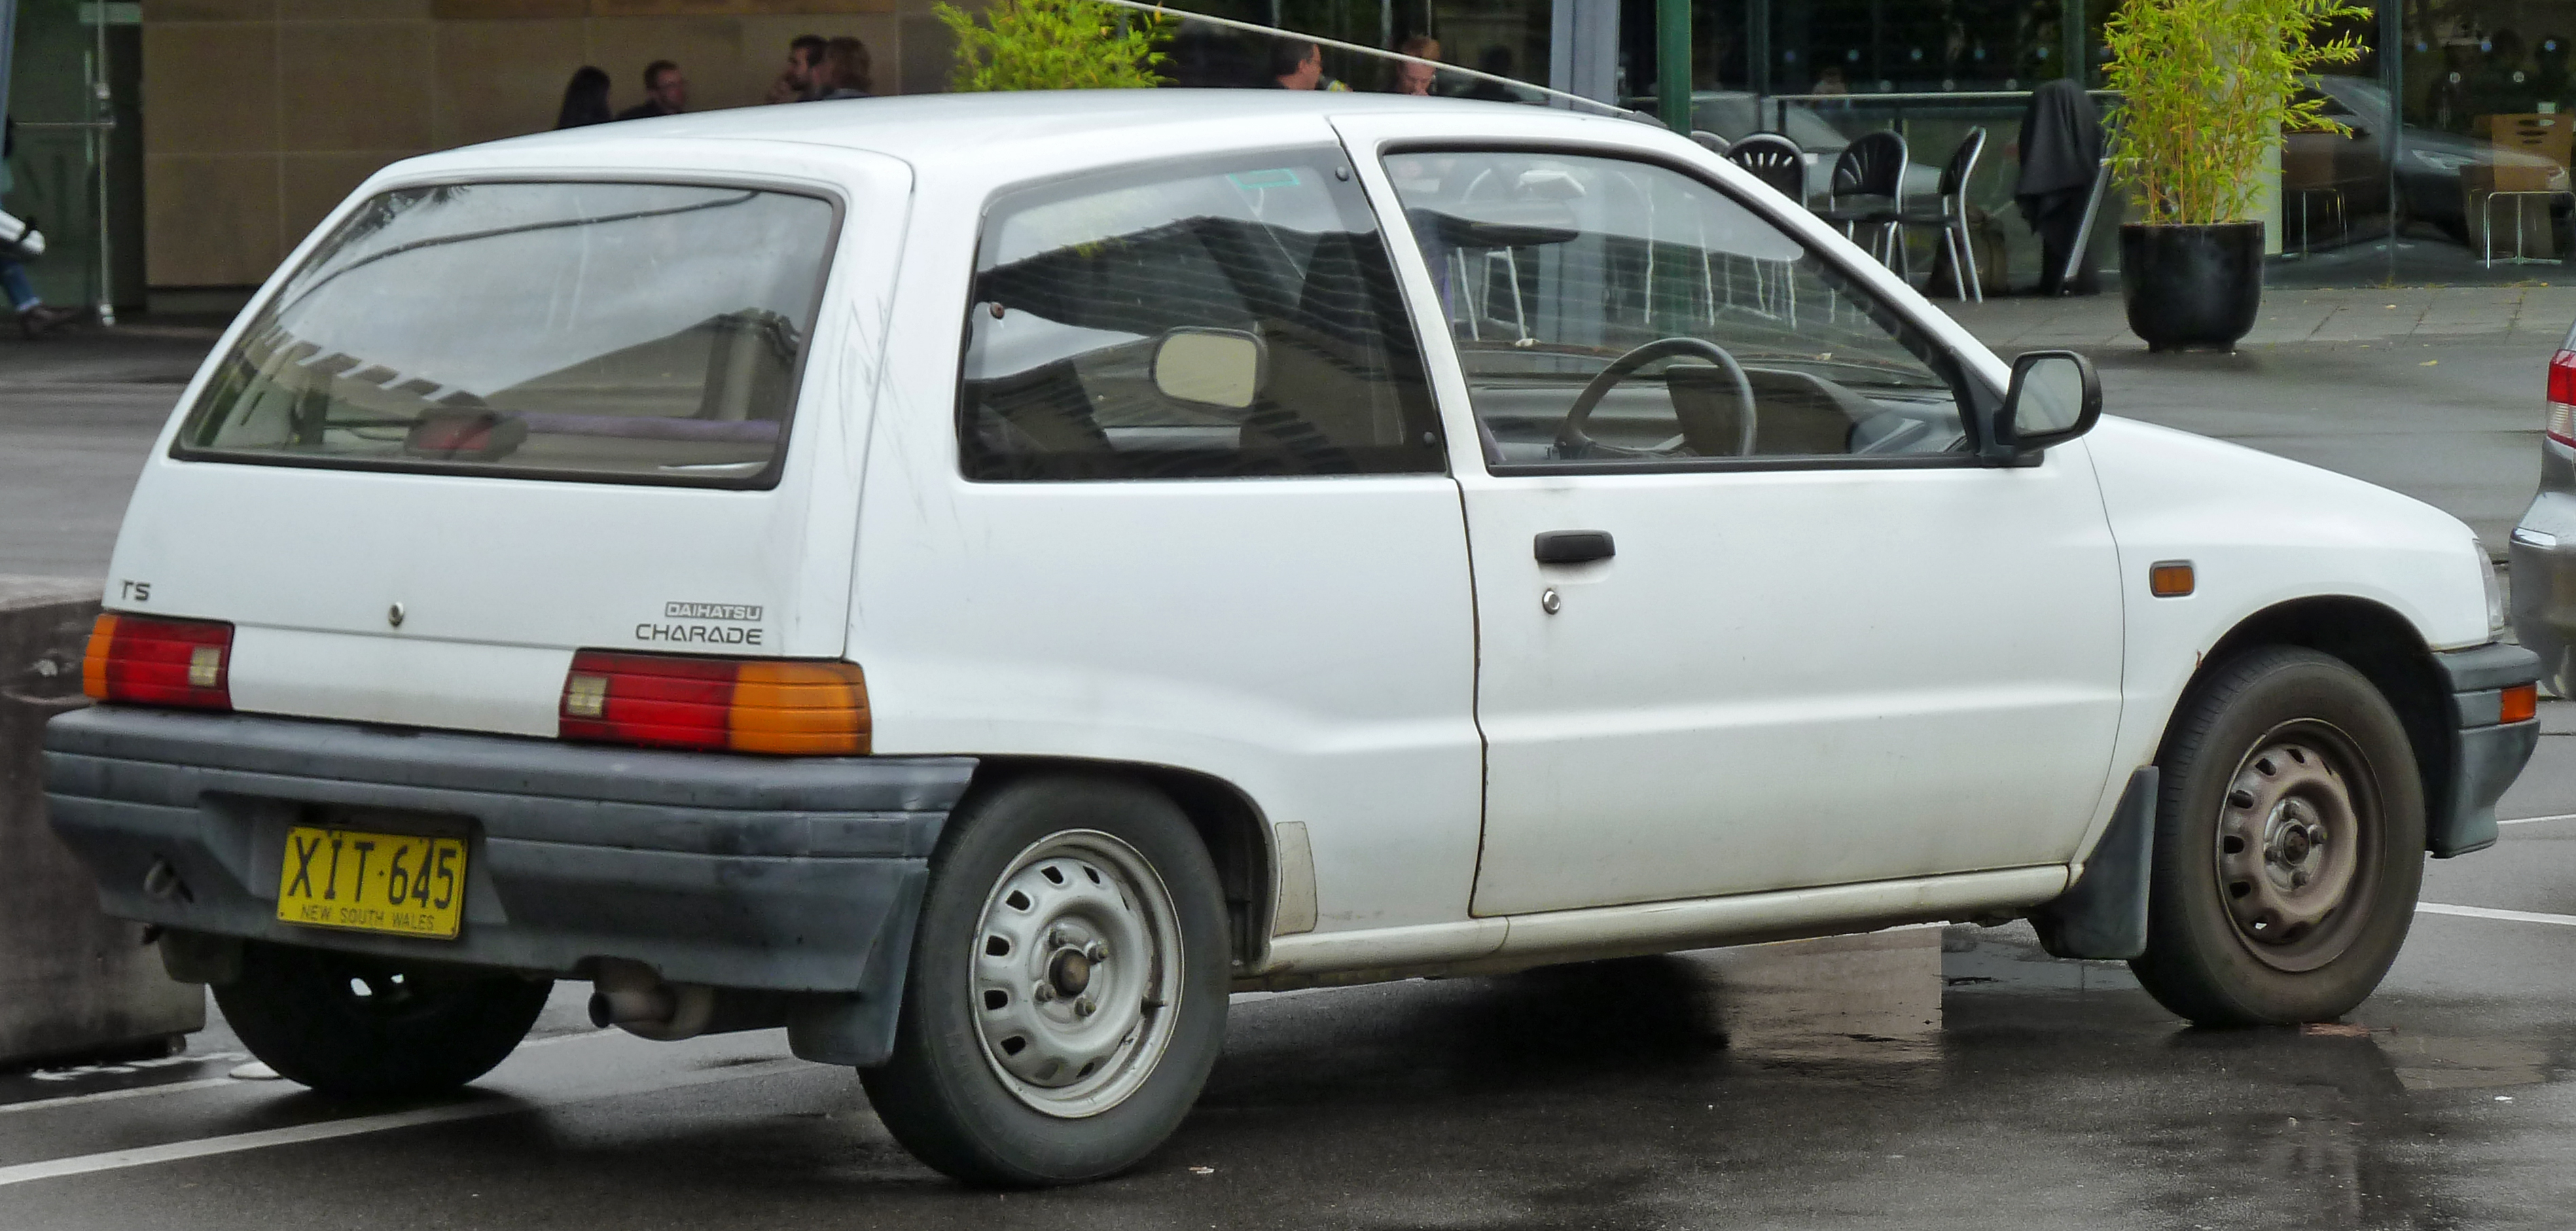 Daihatsu Charade 1993 Exterior Side View